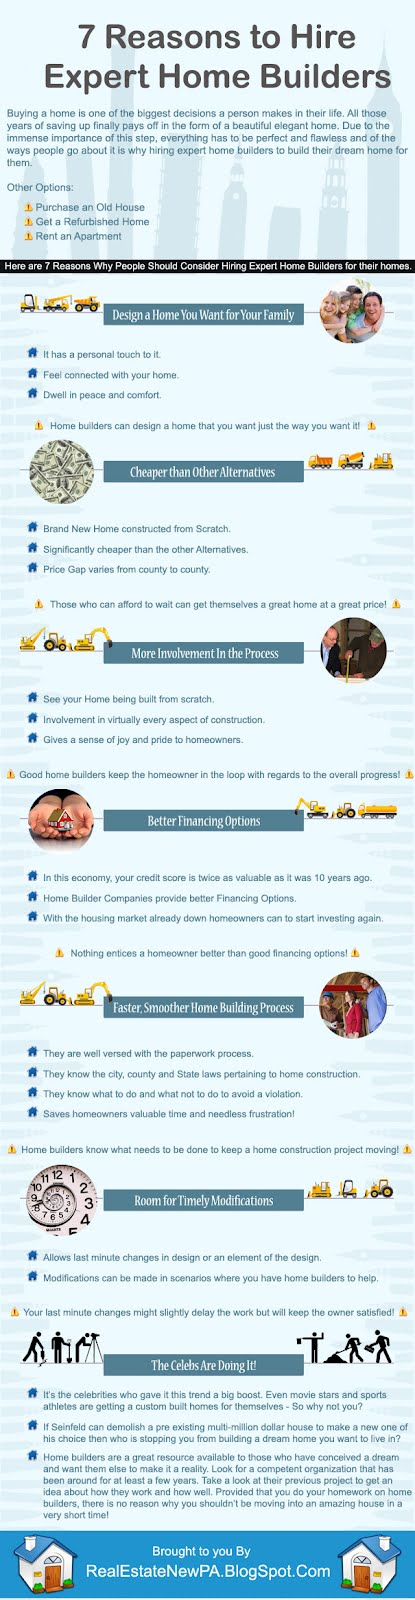 Hire Expert Home Builders [Infographic]